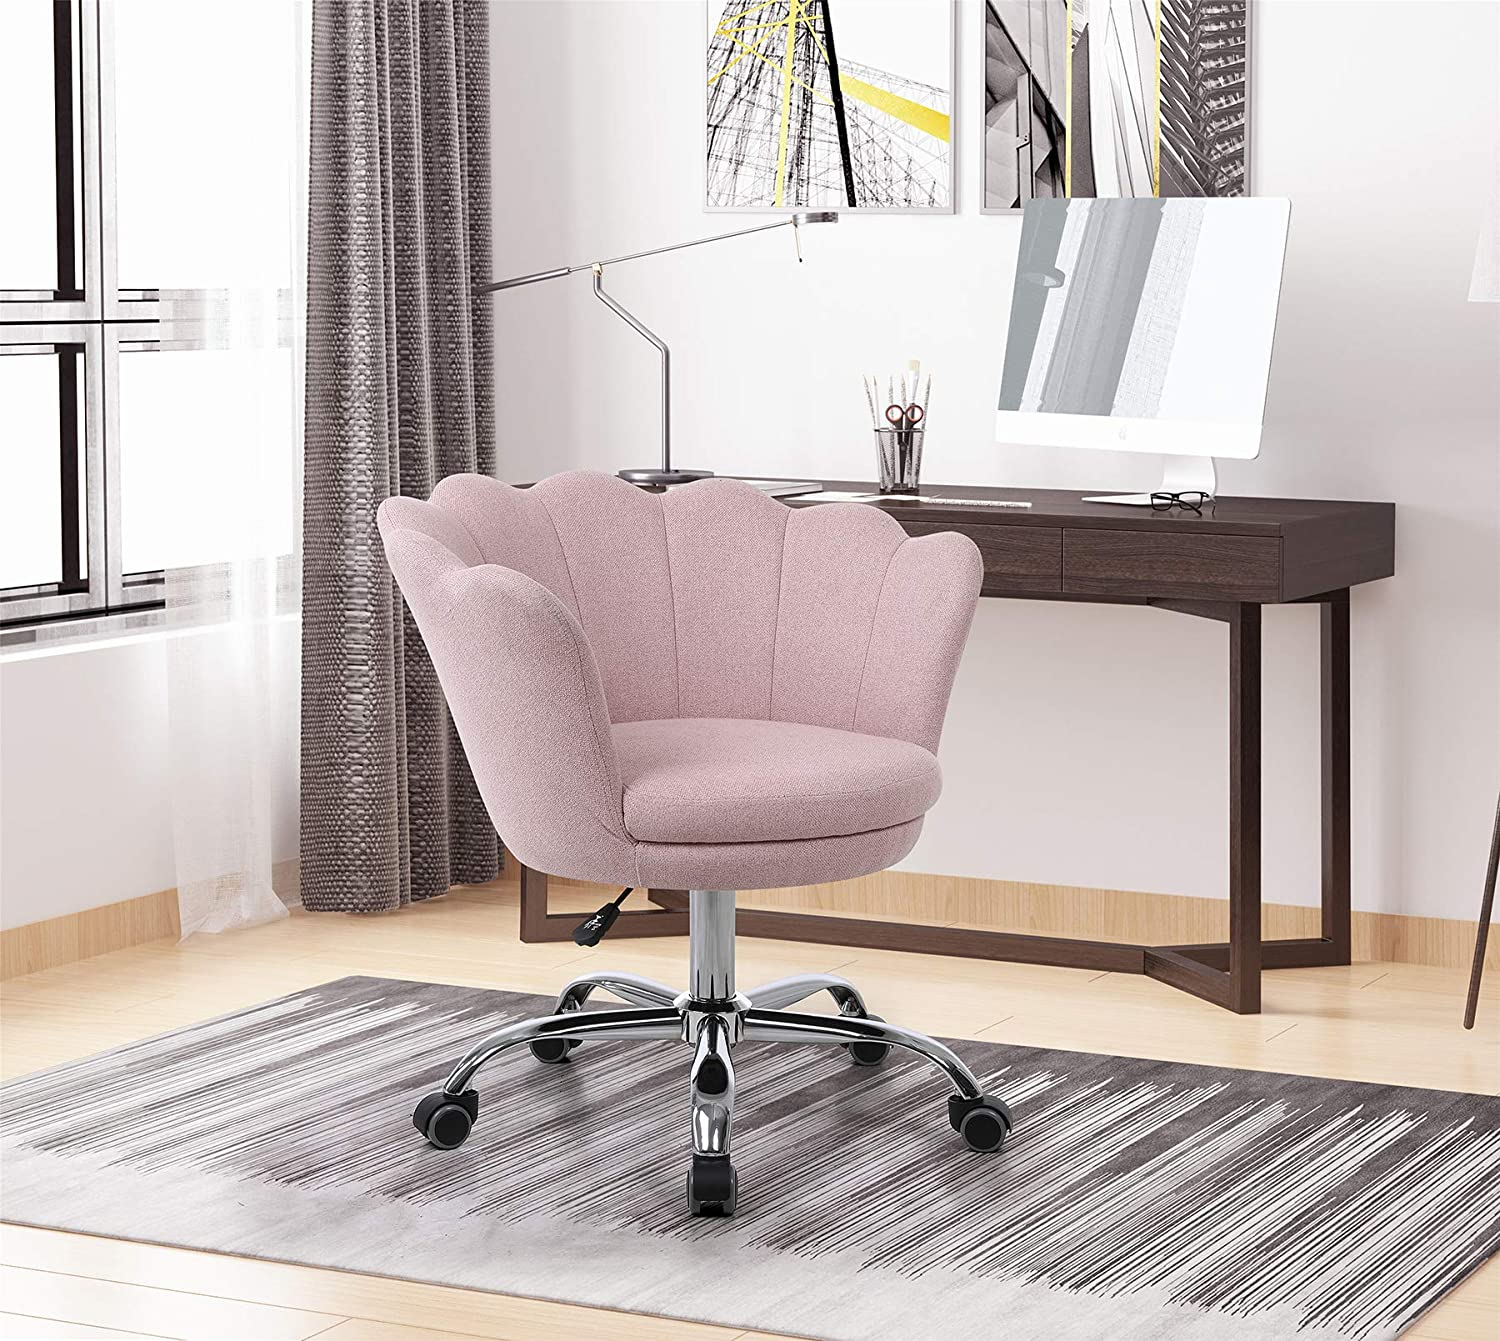 Upholstered Shell Chair 360°Swivel Height Adjustable Modern Fabric Racing Chair Home Office Chair with Metal Base and w/Casters,Tufted Vanity Gaming Chair with Wheels for Living Bedroom(Pink)